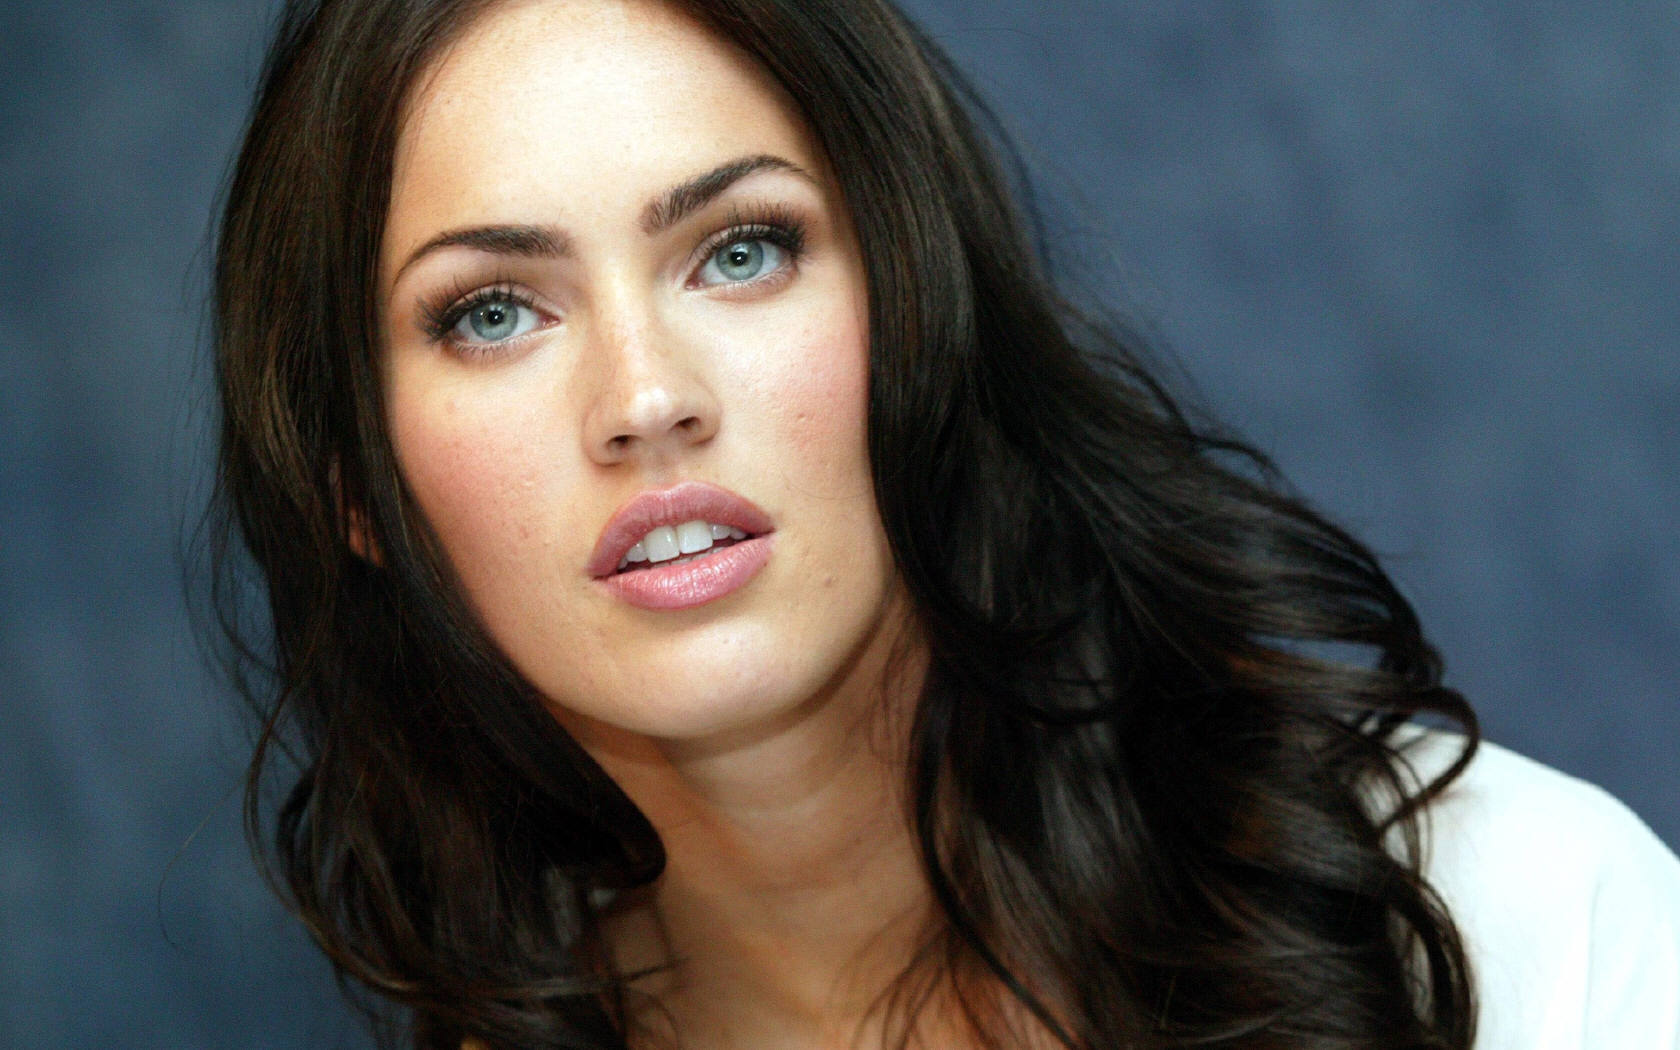 1680x1050 Megan Fox Blue Eyes desktop PC and Mac wallpaper 1680x1050